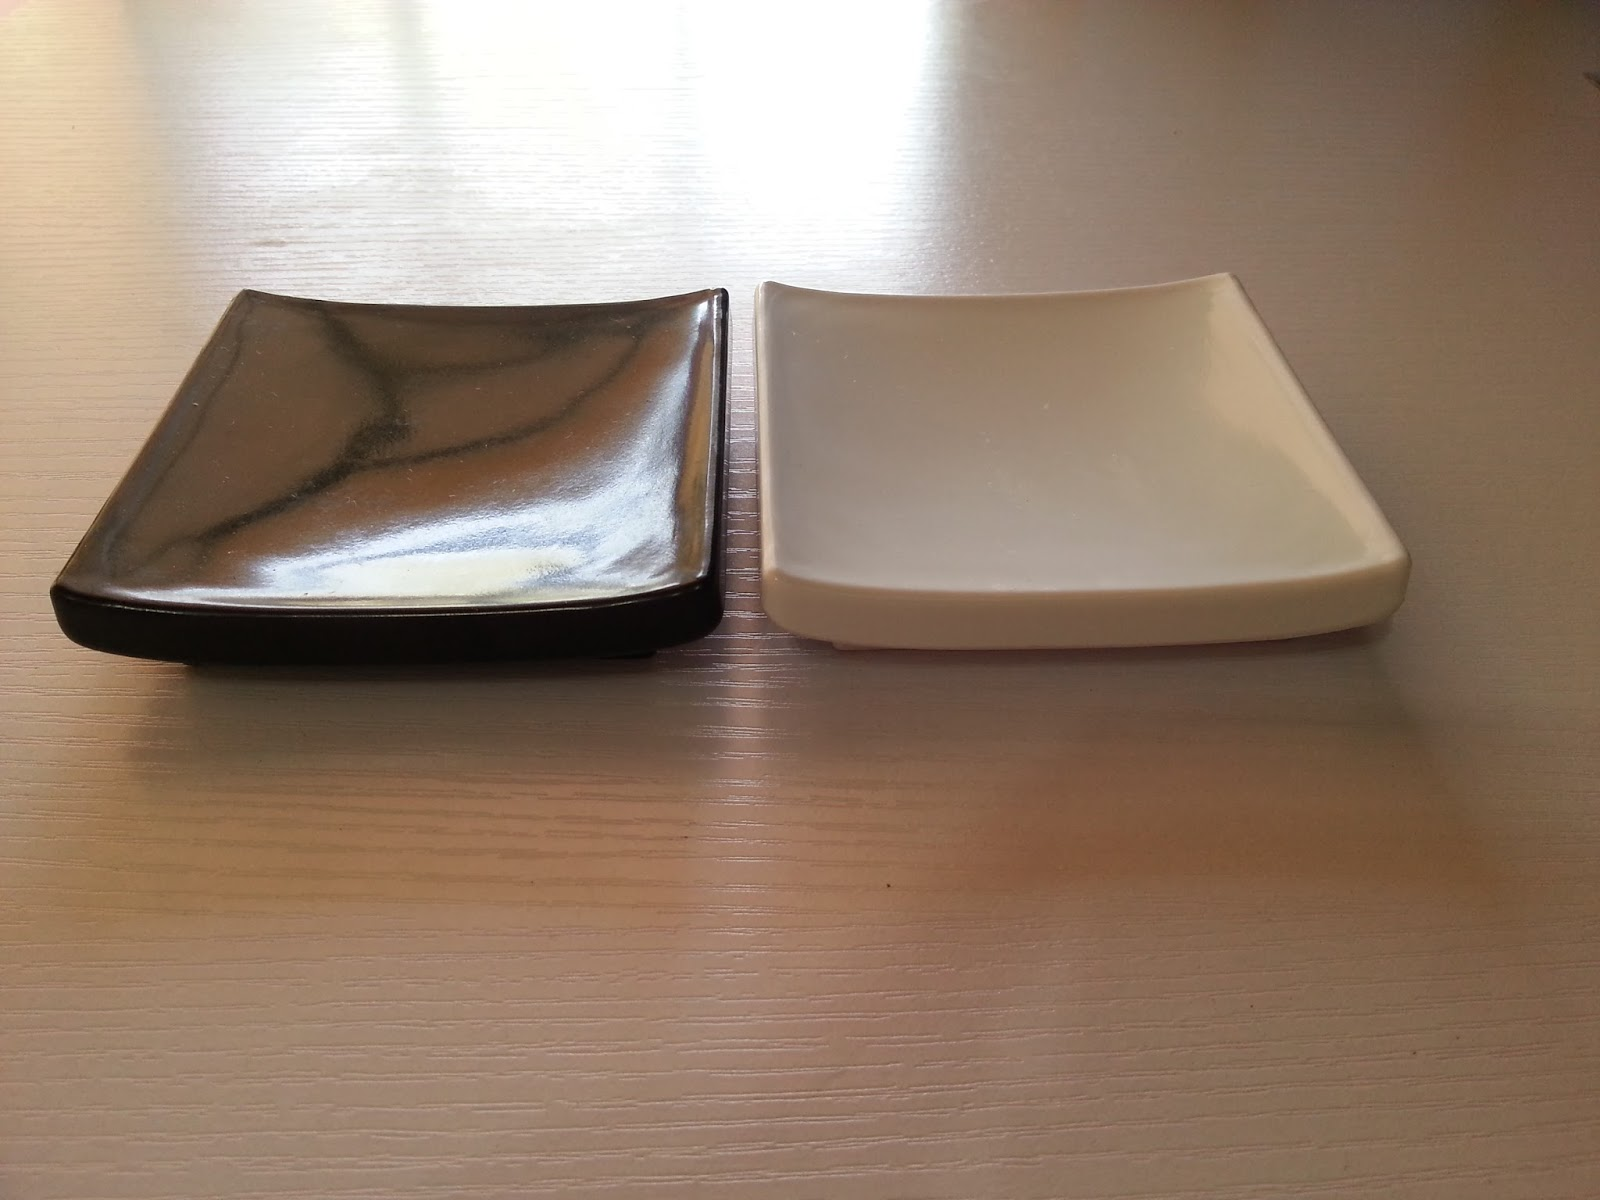 JC Hotel Supplies: Soap dish for hotel size soap bar